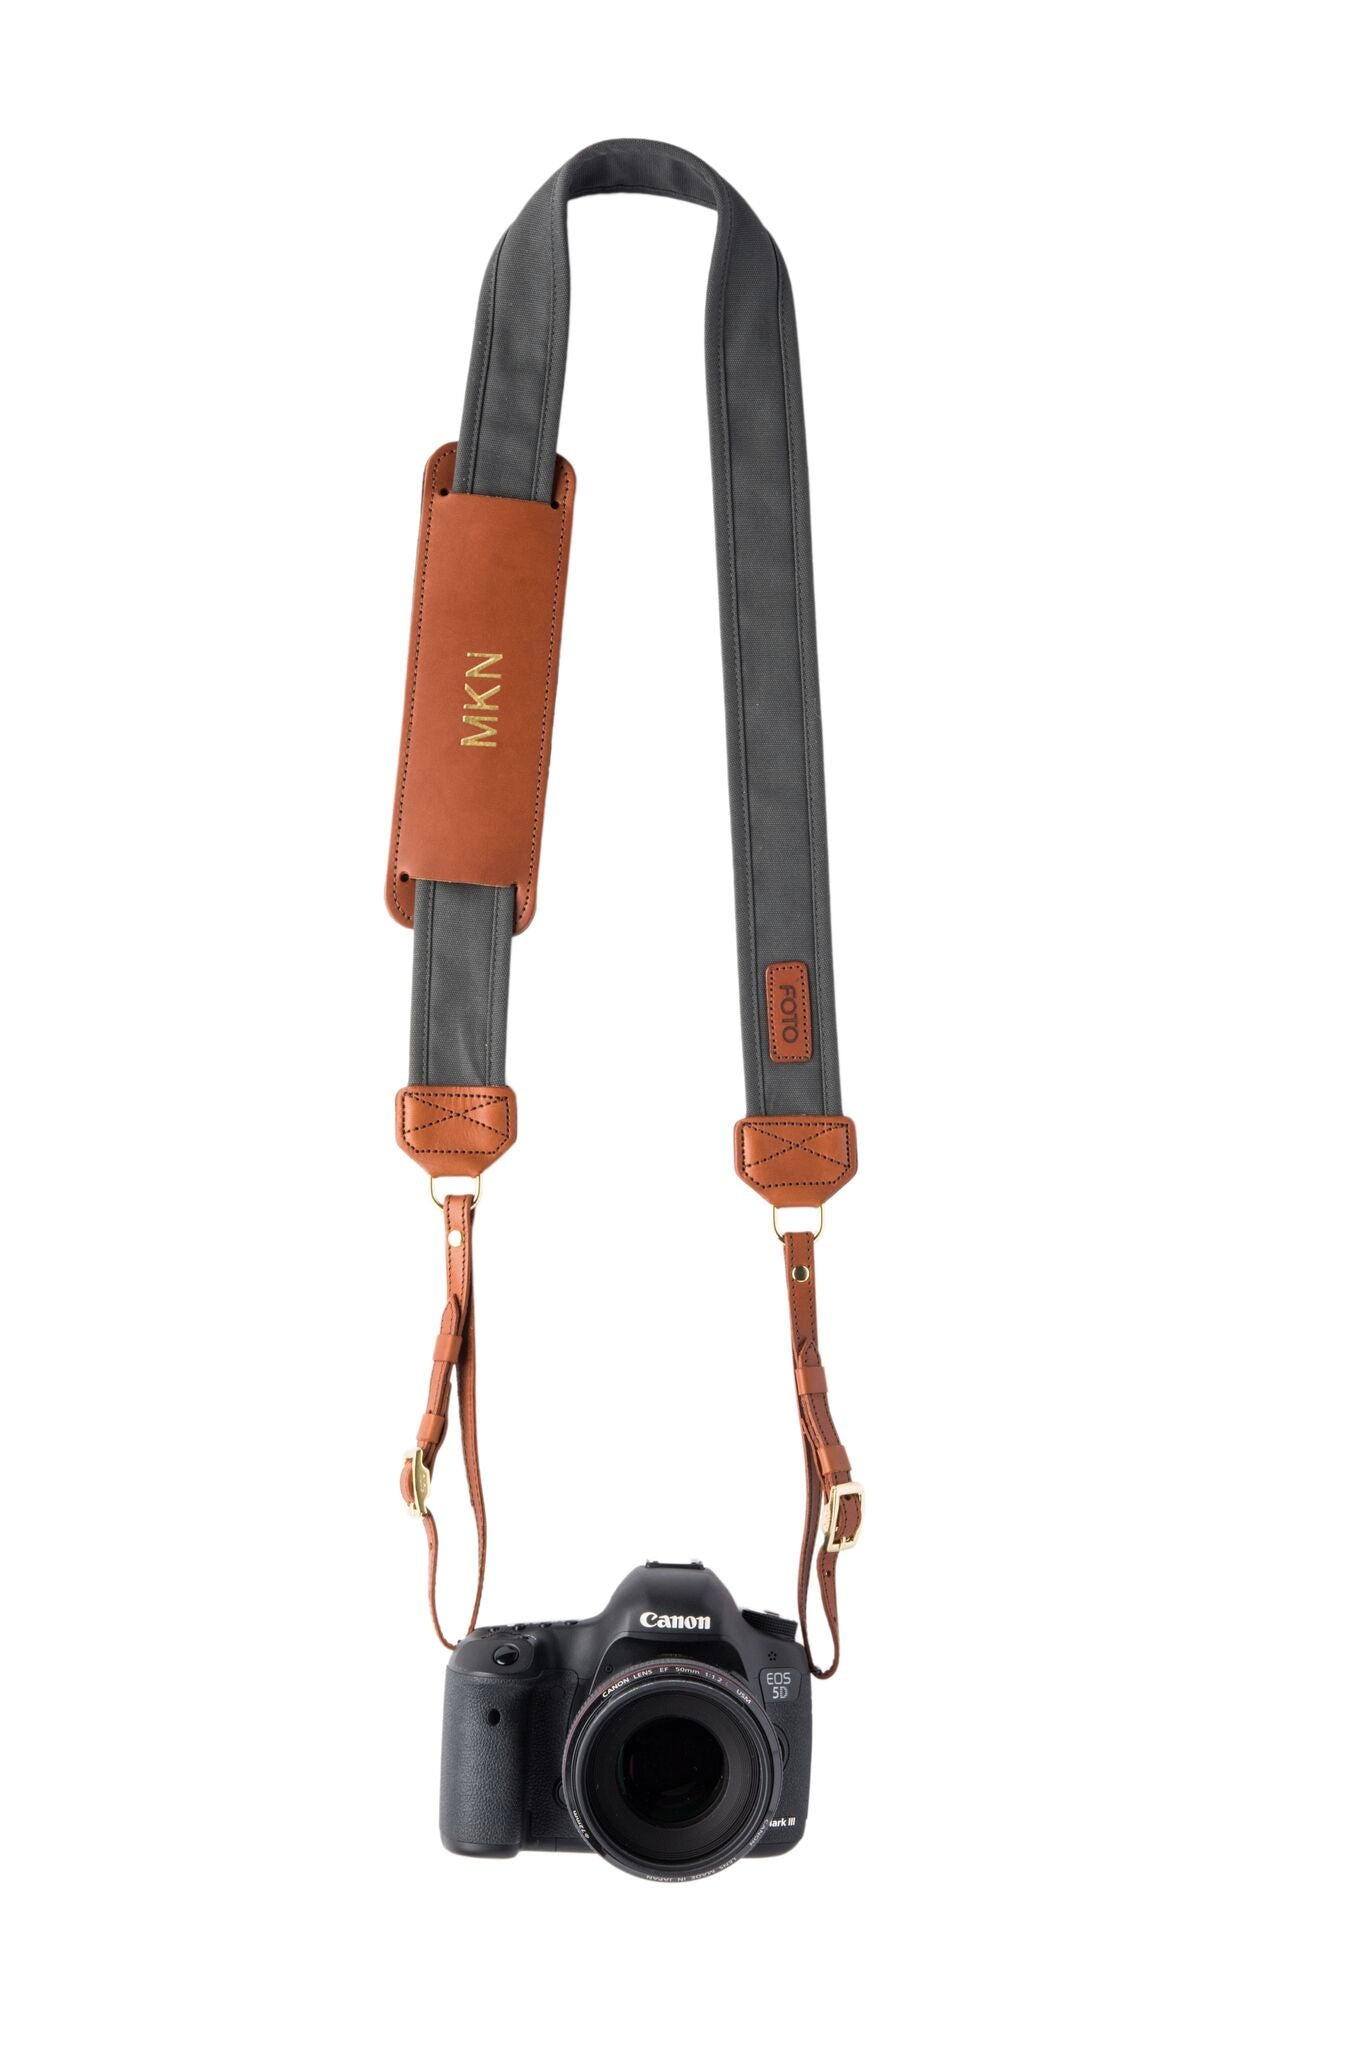 FOTO | Graphite Fotostrap for Her - a charcoal gray canvas and genuine leather camera strap that can be personalized with a monogram or business logo, making it the perfect personalized gift!